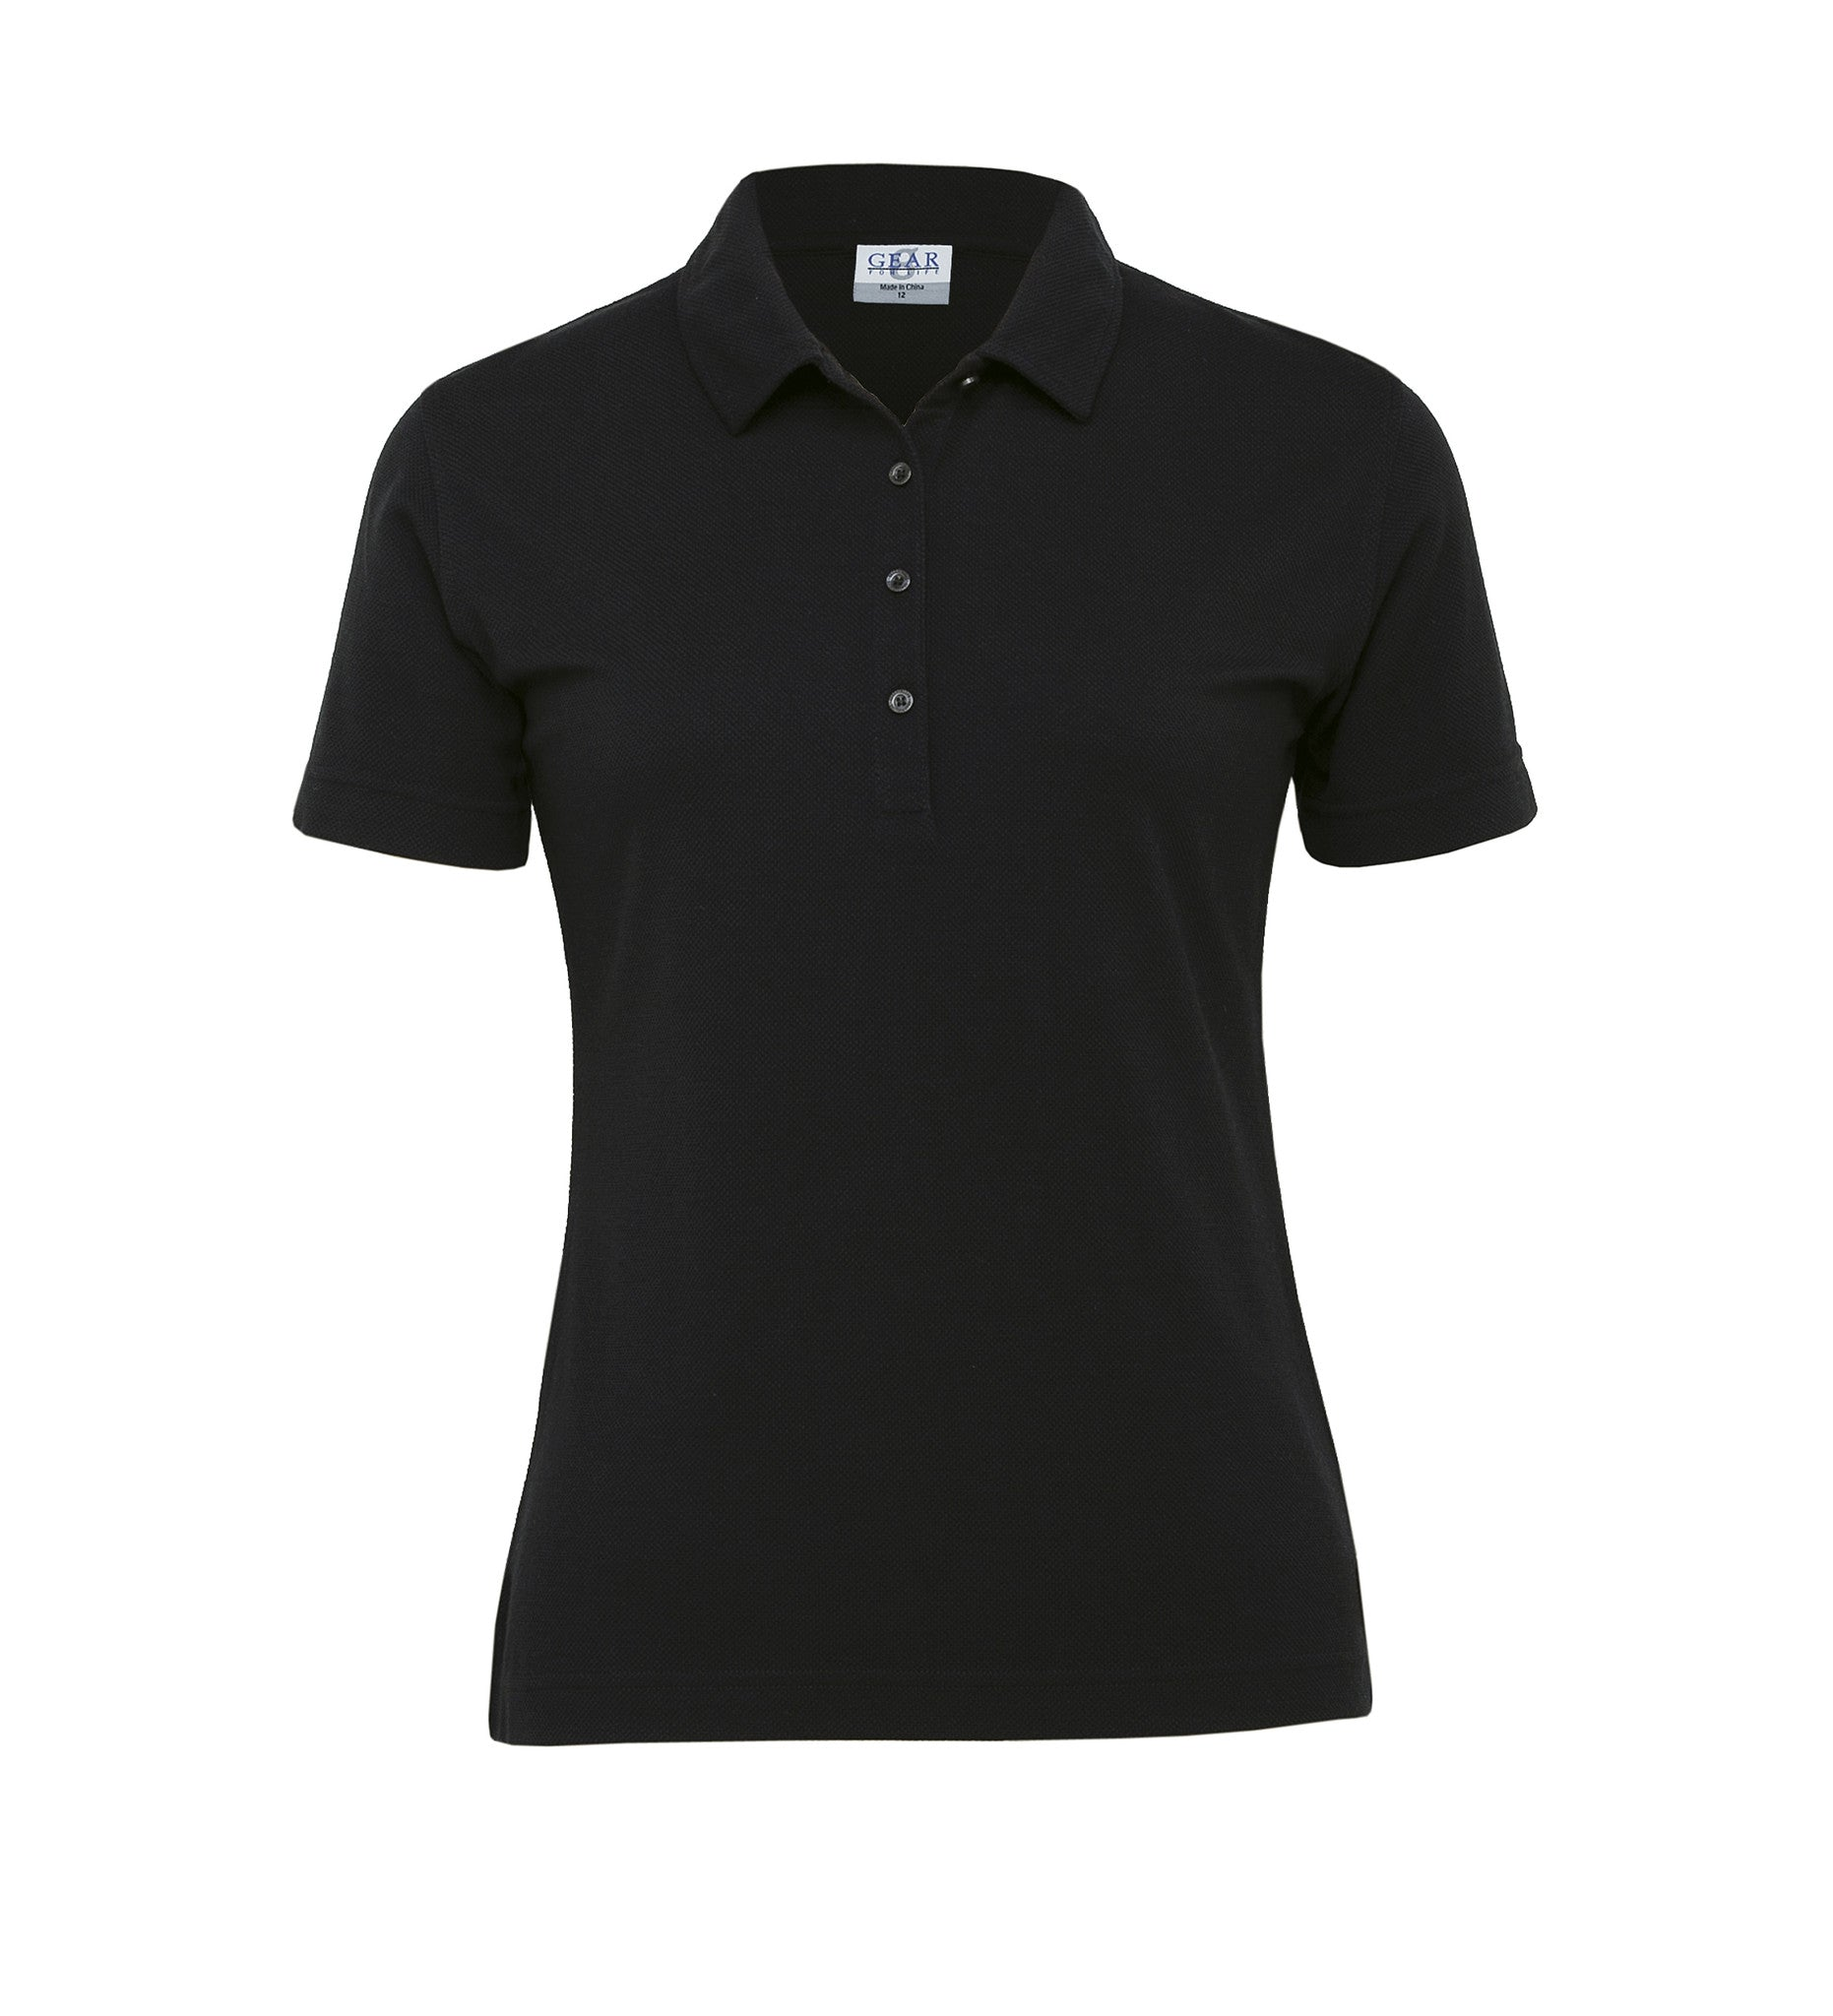 Gear For Life-Gear For Life Womens Pinacool Eco Polo--Corporate Apparel Online - 1